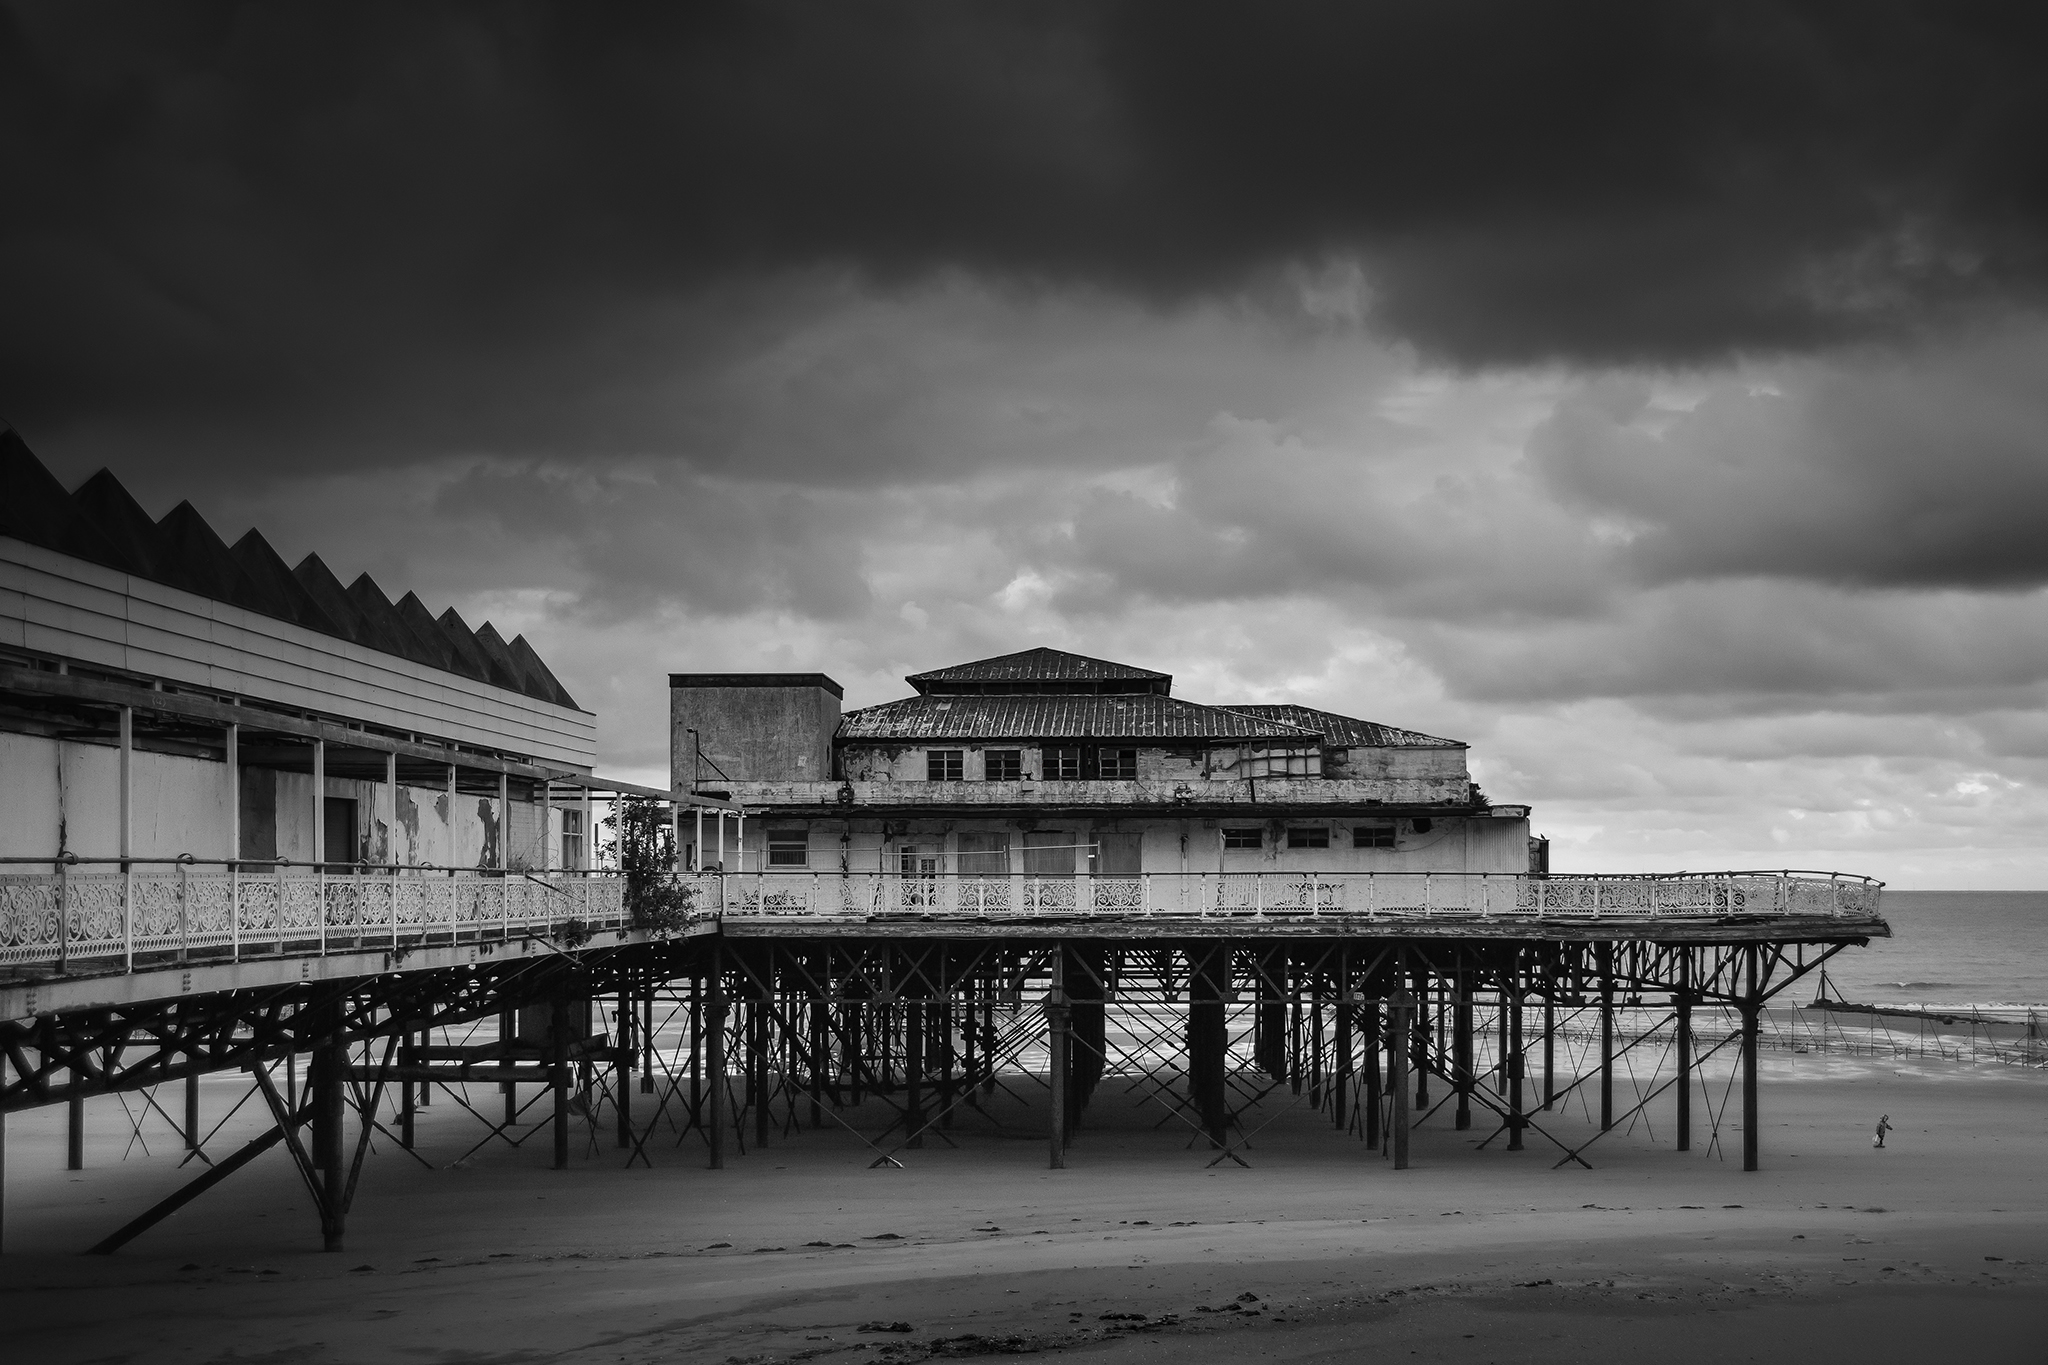 The soon to be demolished Victoria Pier at Colwyn, North Wales.